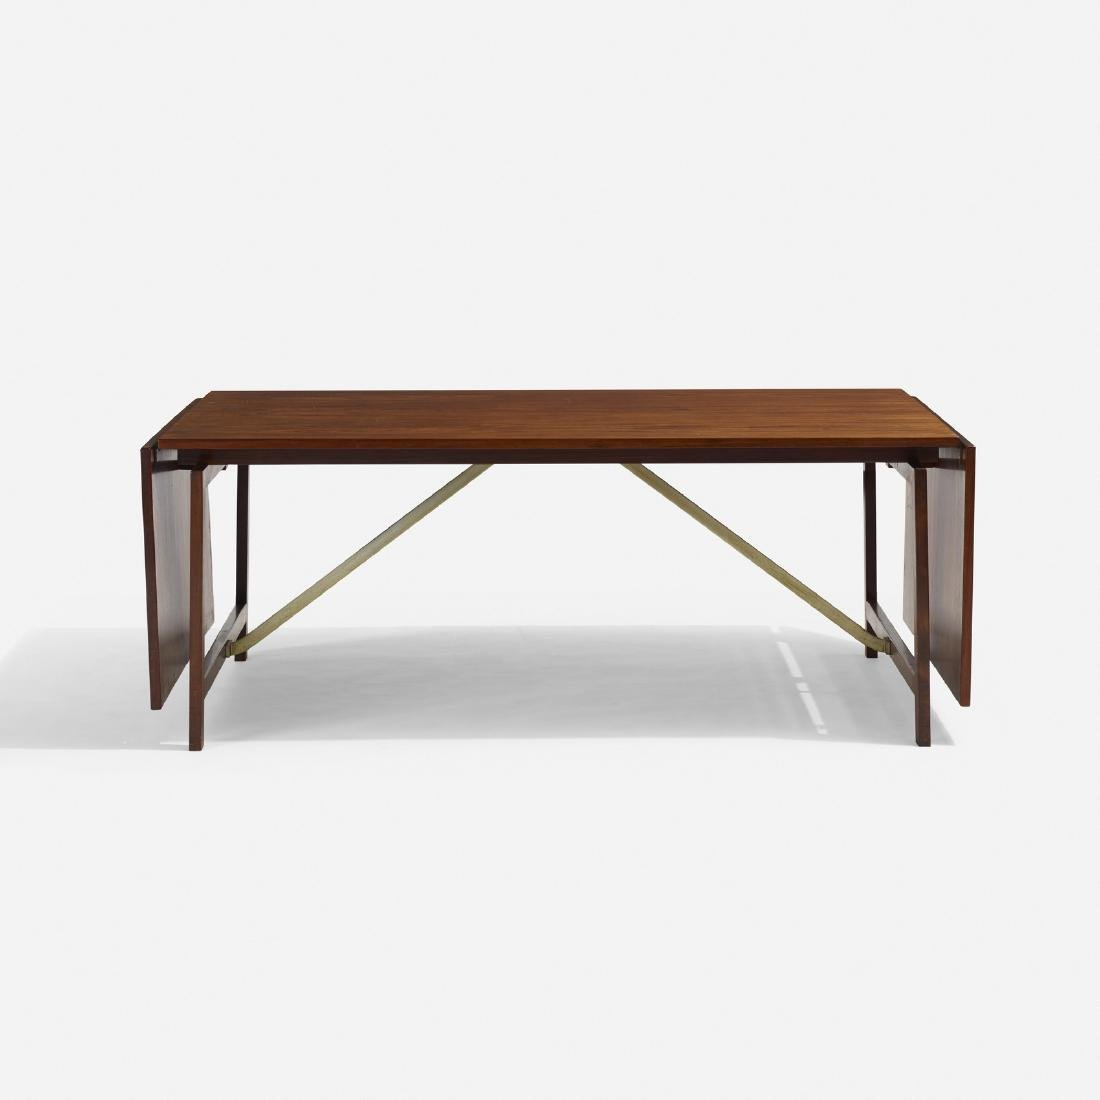 Hans J. Wegner, drop-leaf dining table